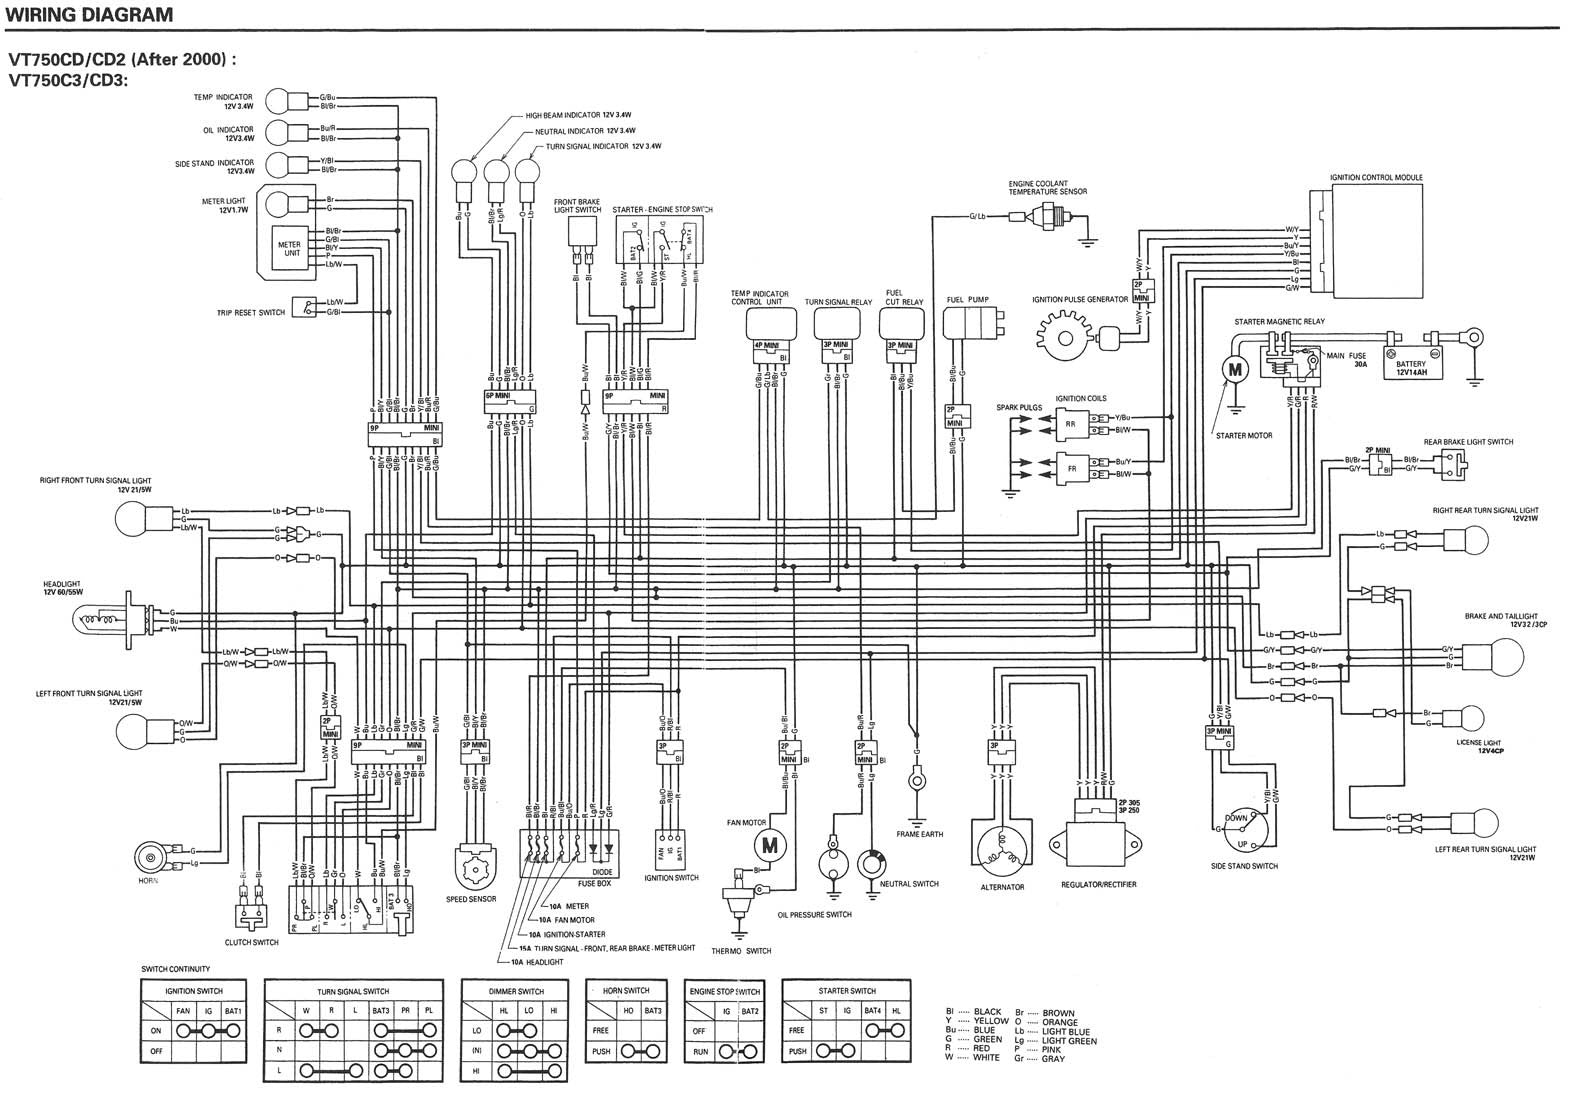 Faq Tj Brutal Customs Diagram As Well Push Button Start Stop Switch Wiring On Honda Vt750 Ace 2001 2003 V2 And Kill